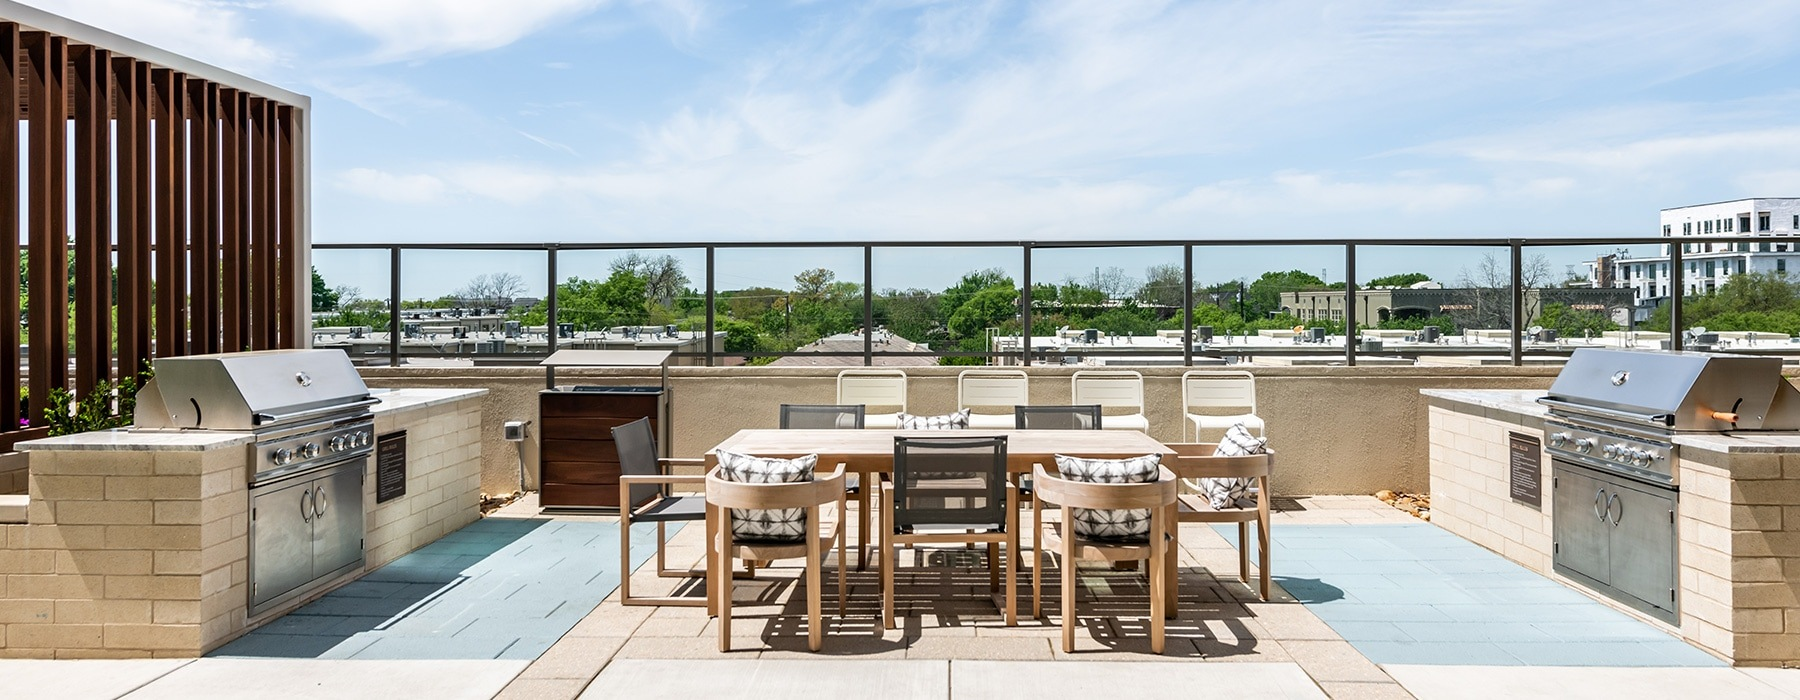 rooftop with community views, tables, chairs for seating and two grill stations